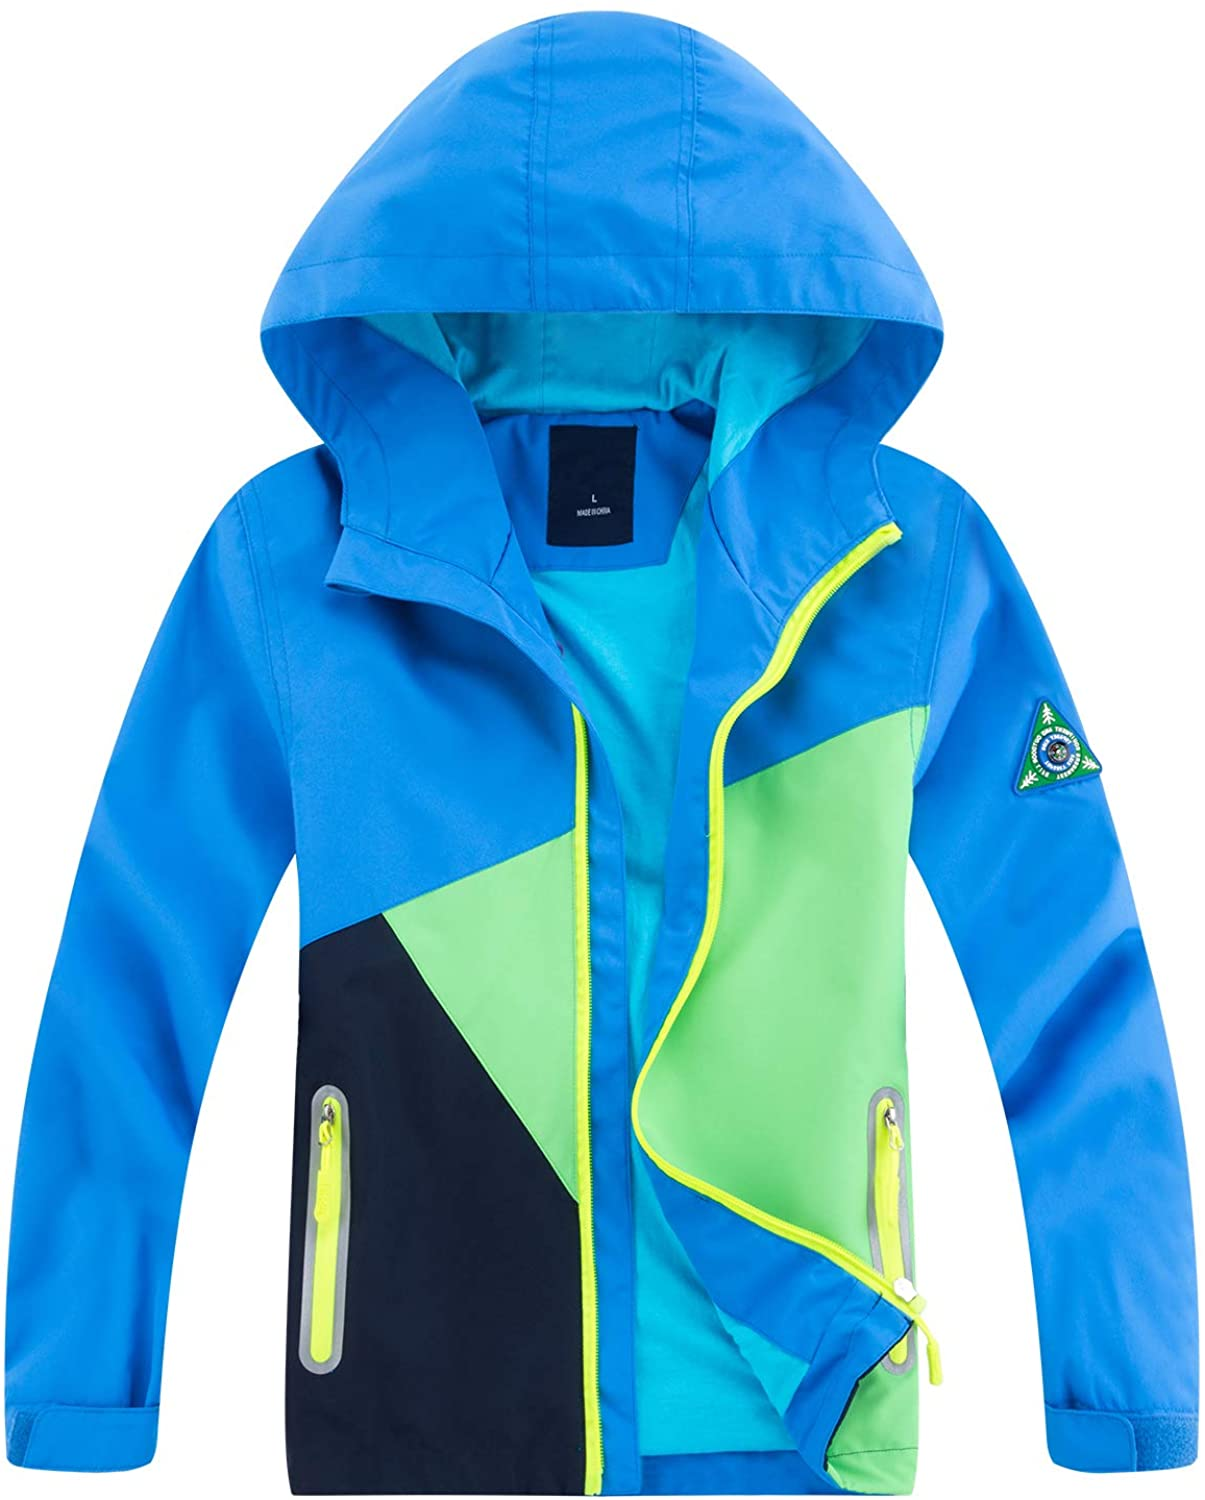 YoungSoul Boys Girls Colorblocked Raincoat Lightweight Outdoor Waterproof Jacket with Hood Blue 3-4 Years/Label S